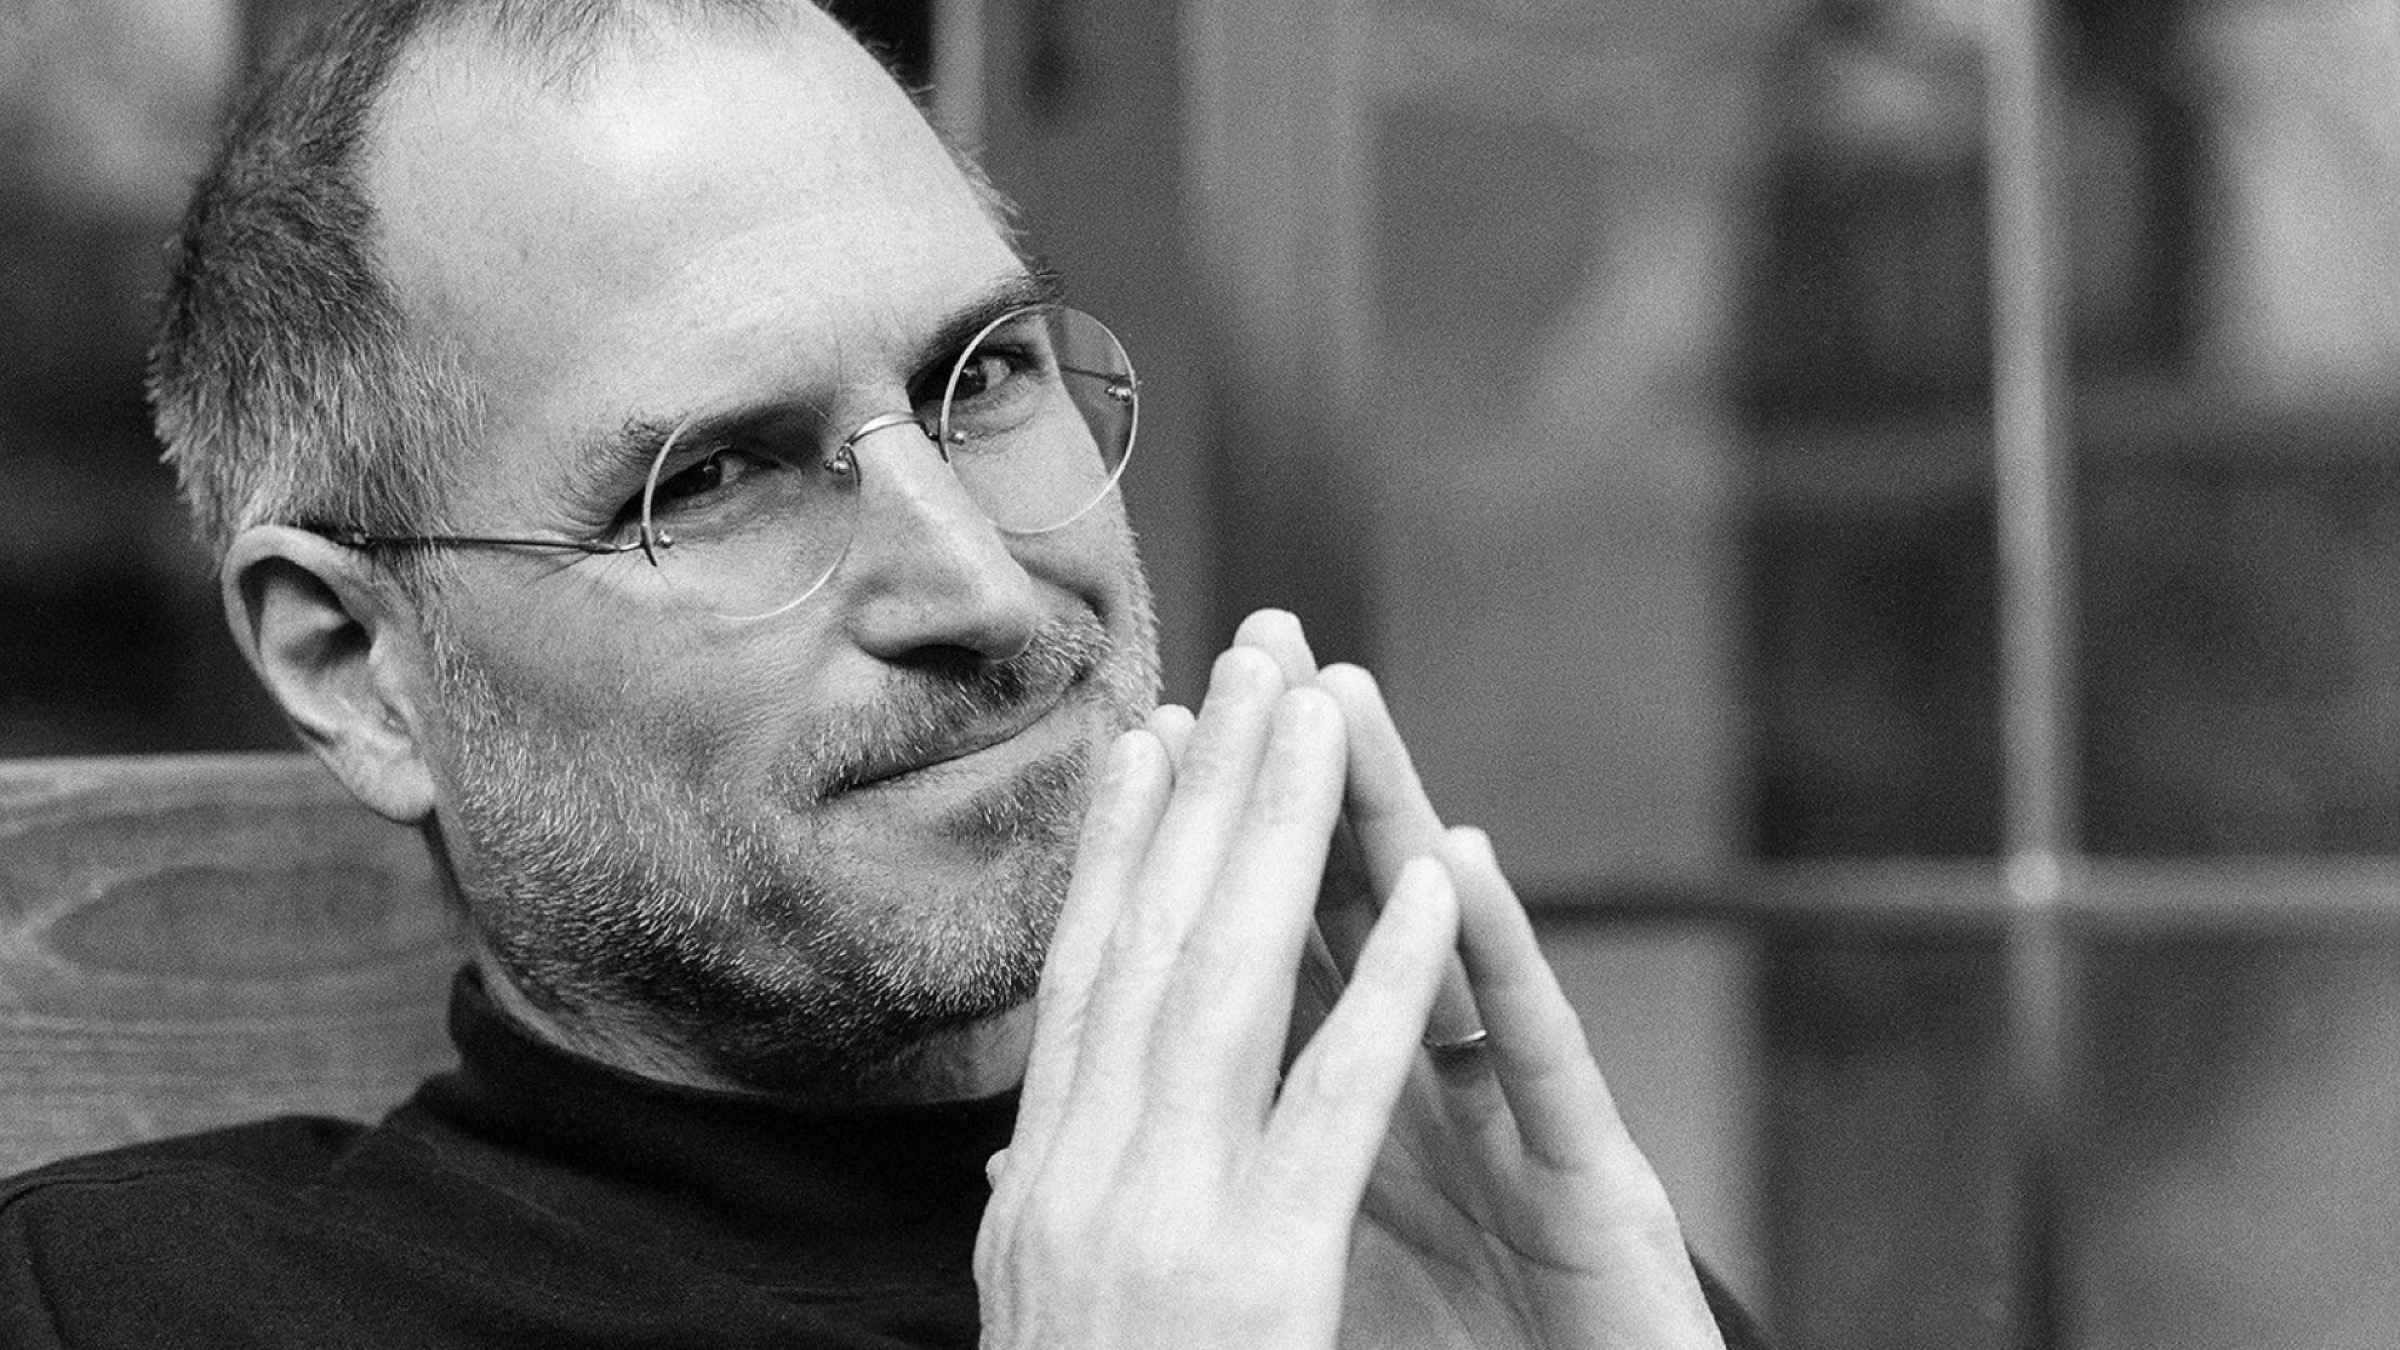 'Insanely Great' is a Steve Jobs bio that's easier to digest